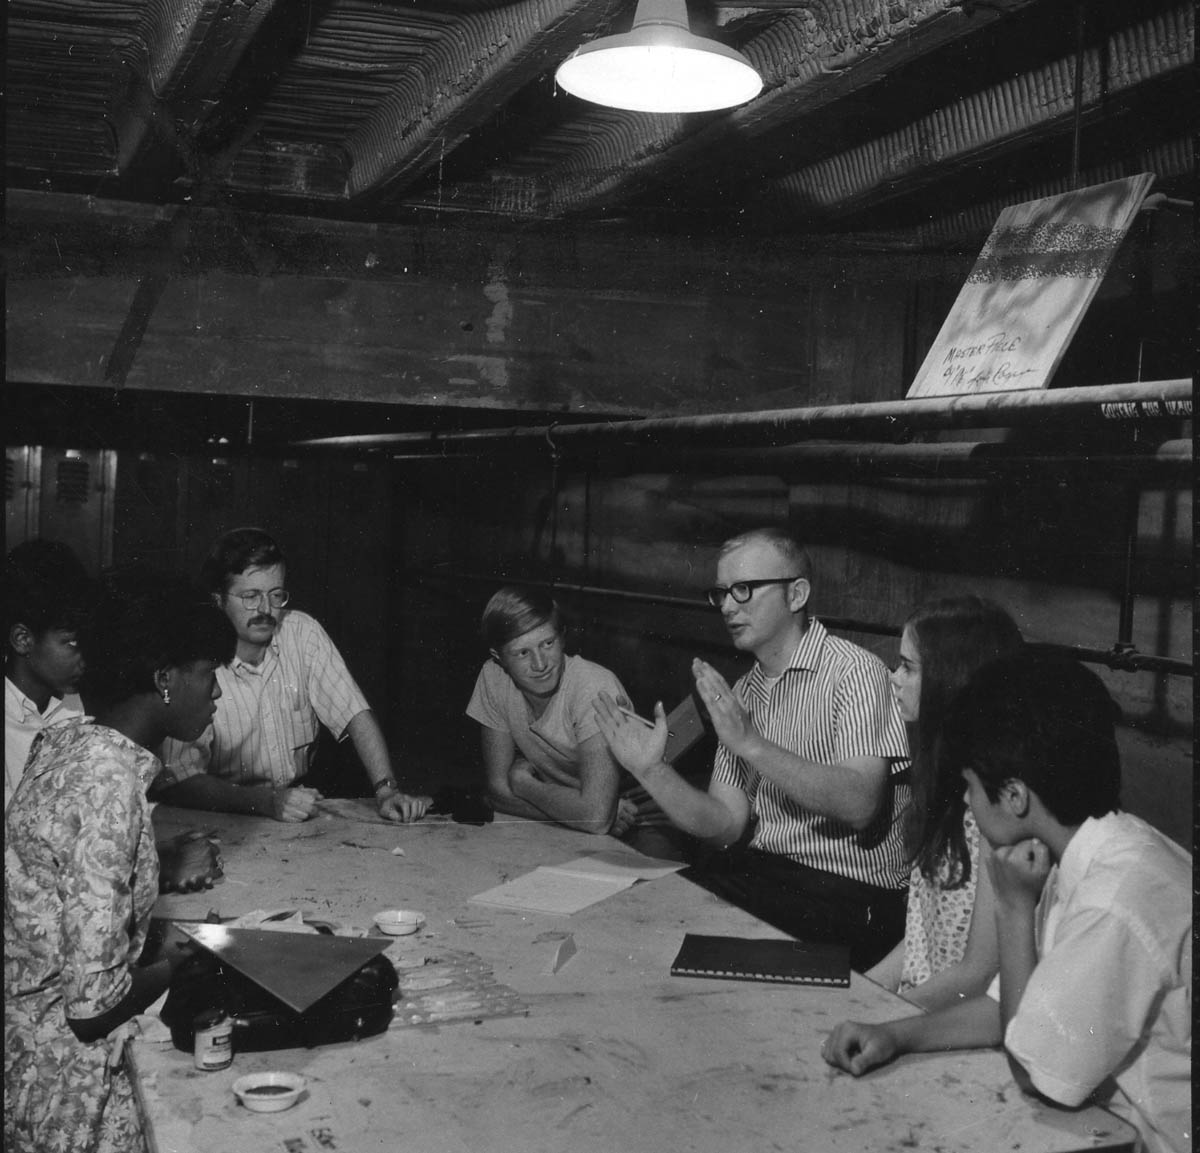 David Tomlinson (fifth from left) teaching at the workshop, 1968